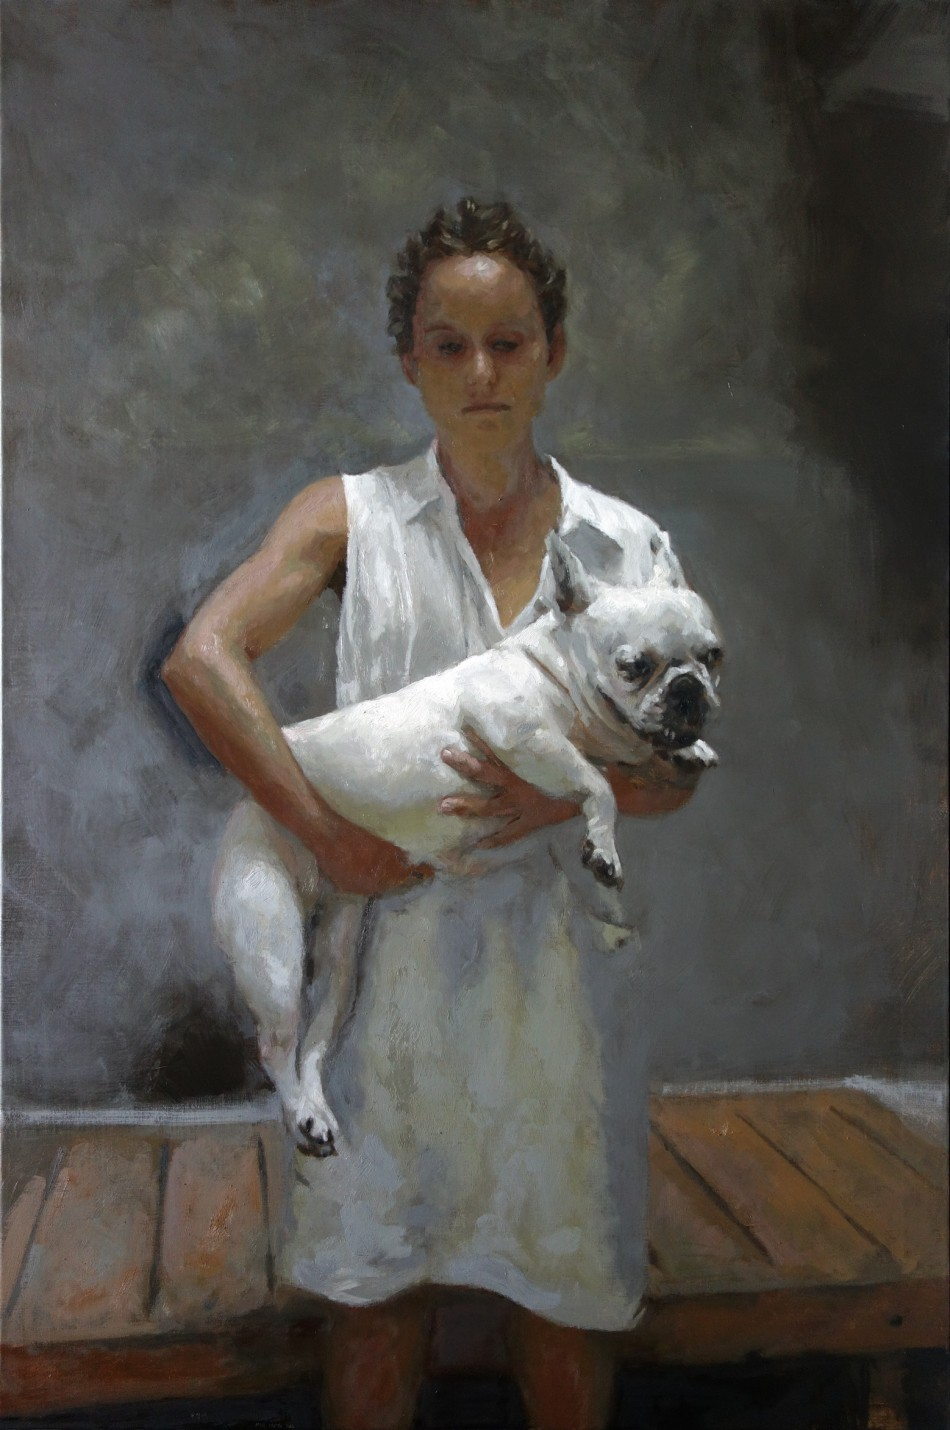 Woman standing with a dog | Rafel Bestard